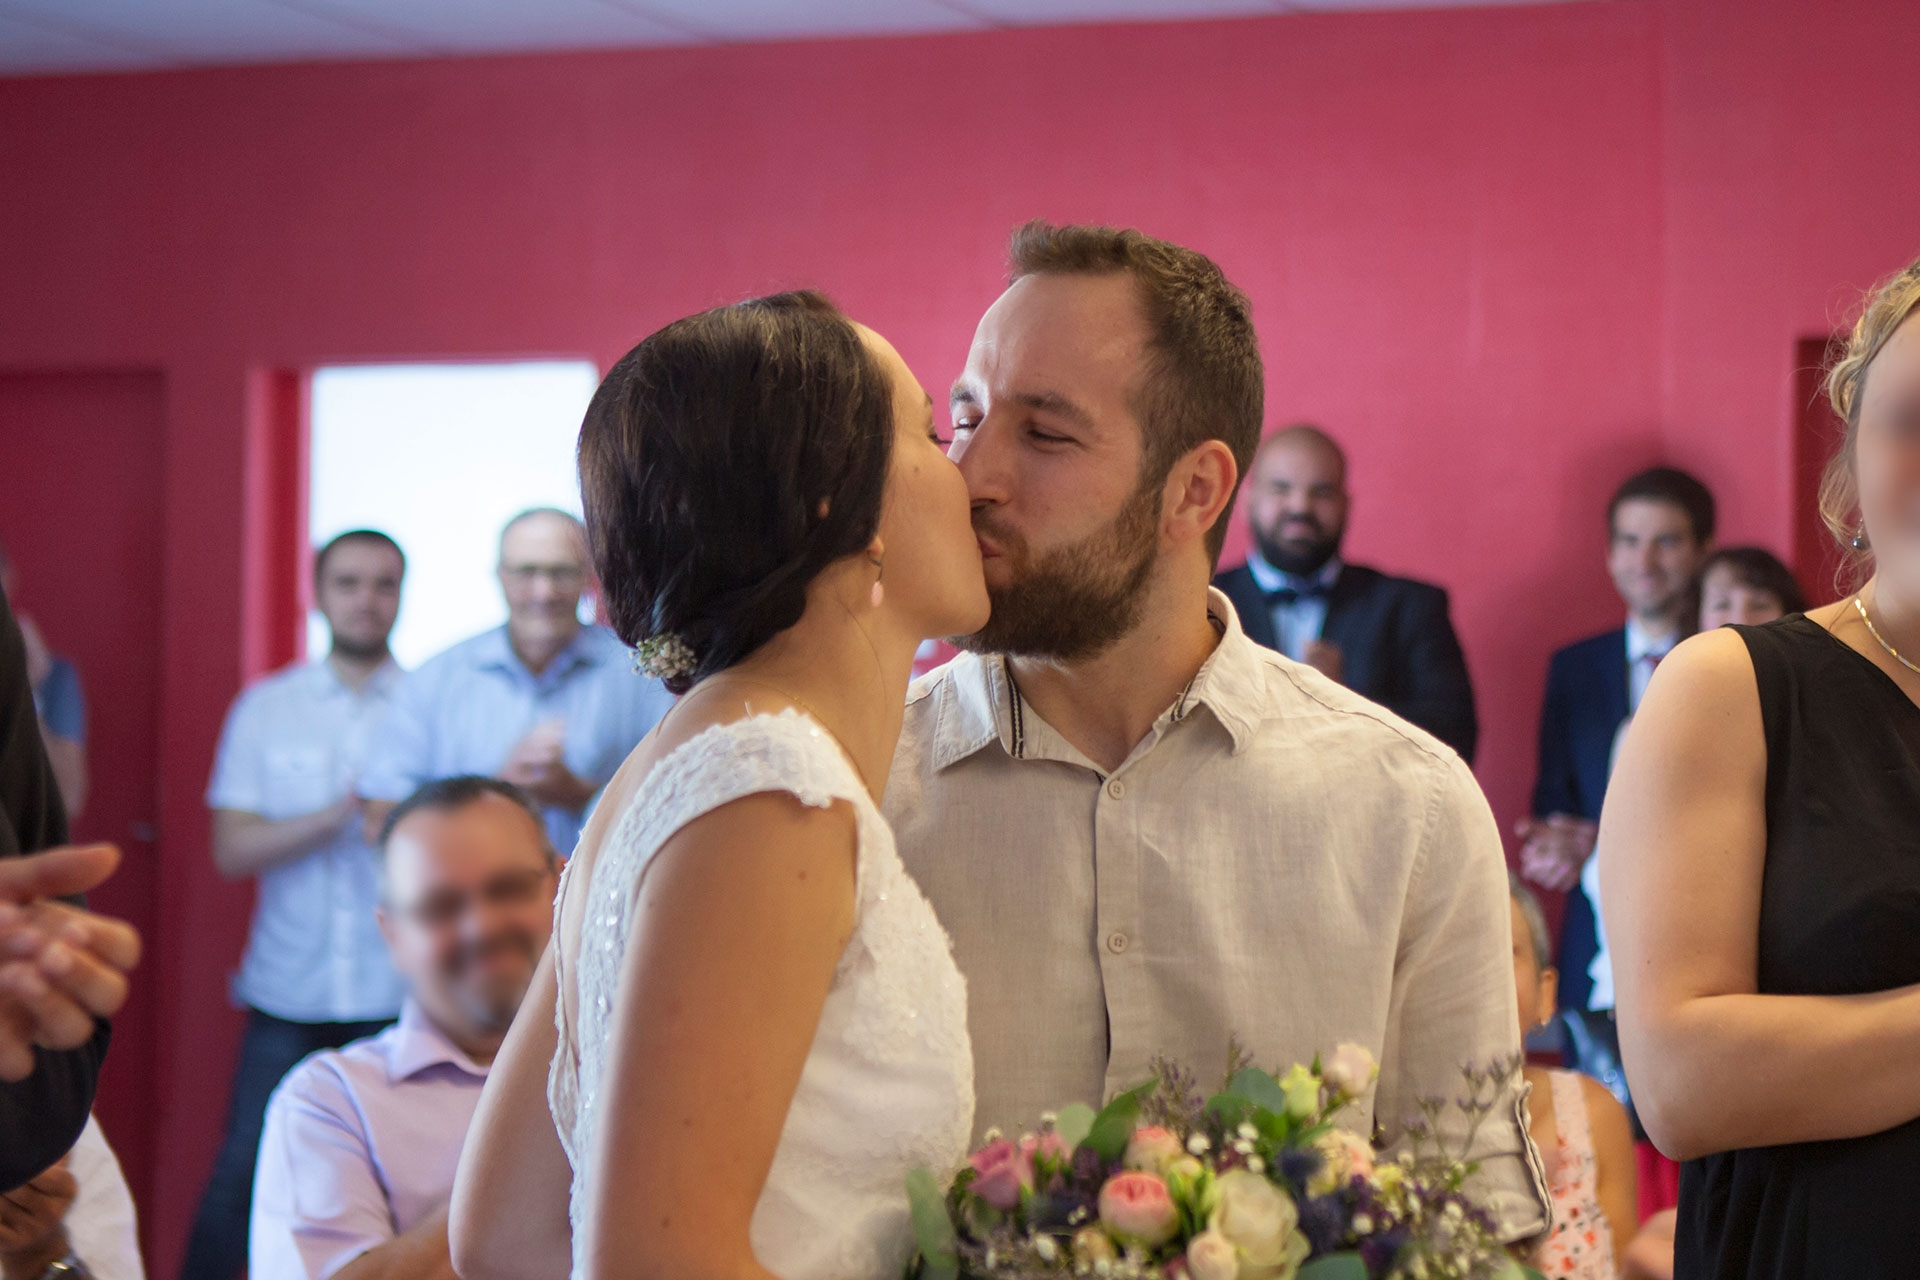 particuliers-evenements-mariage-oui-carla&jeremy-39